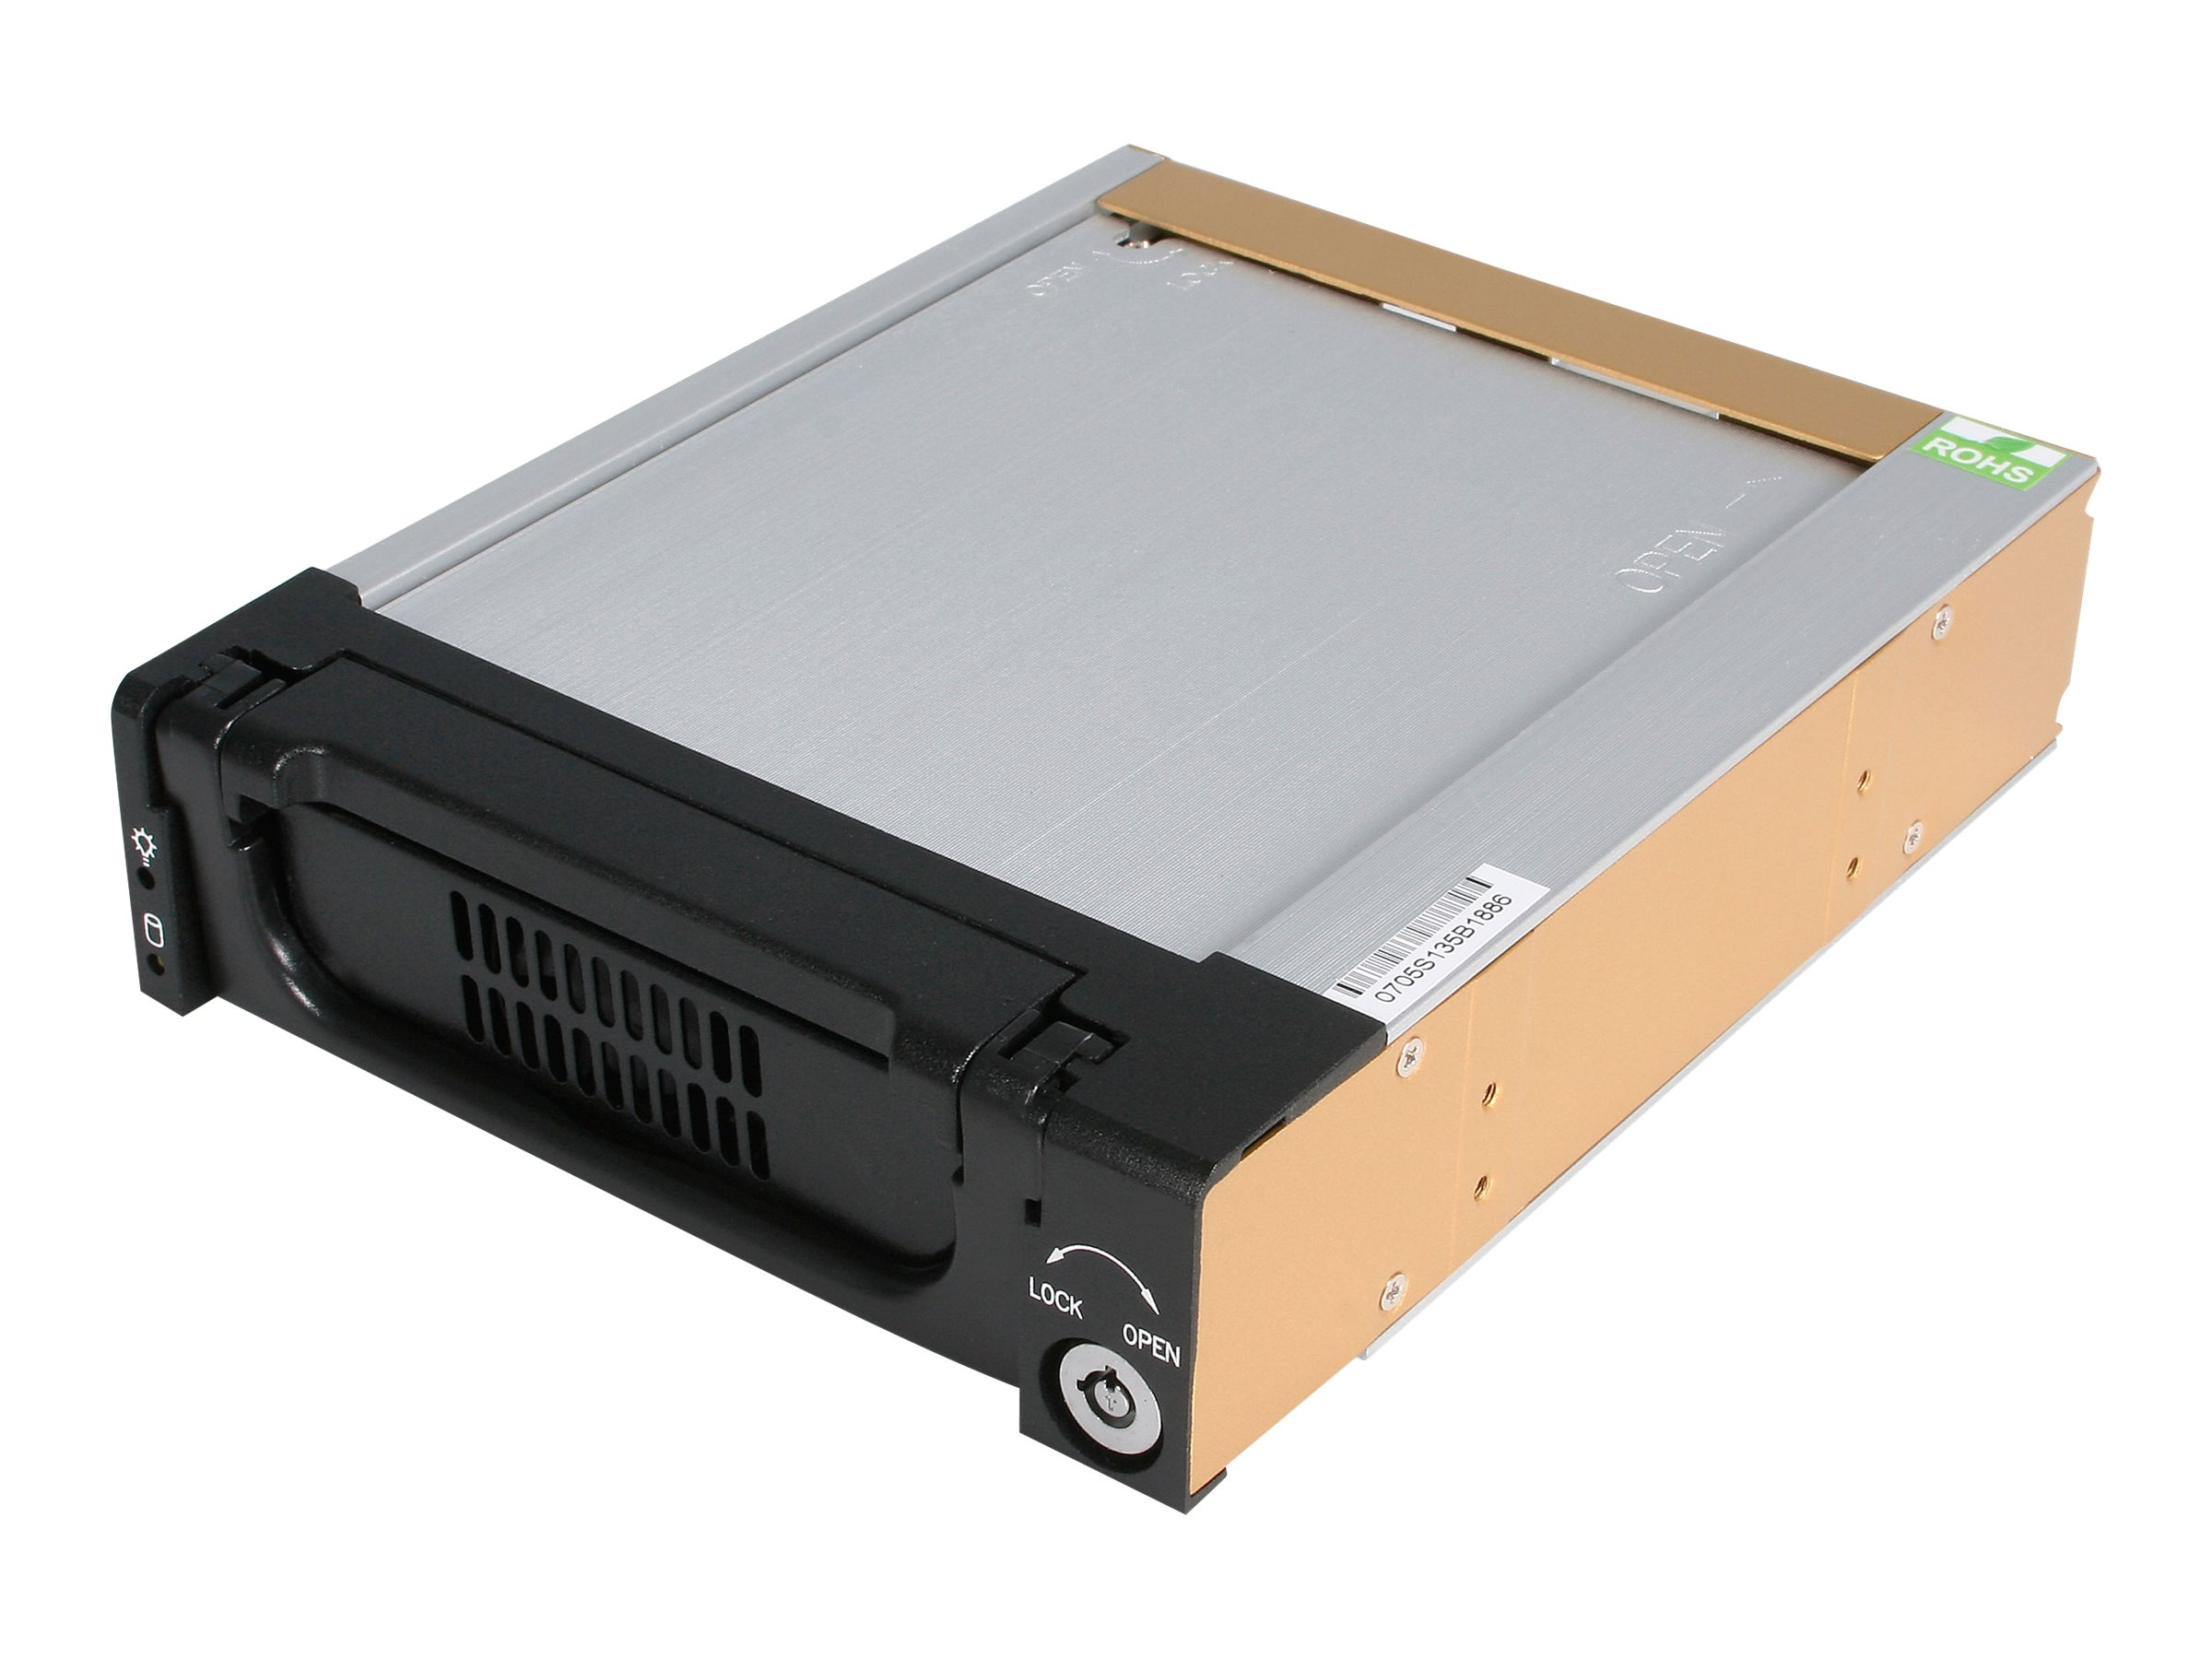 StarTech.com Black Aluminum 5.25in Rugged SATA Hard Drive Mobile Storage Rack Drawer, DRW150SATBK